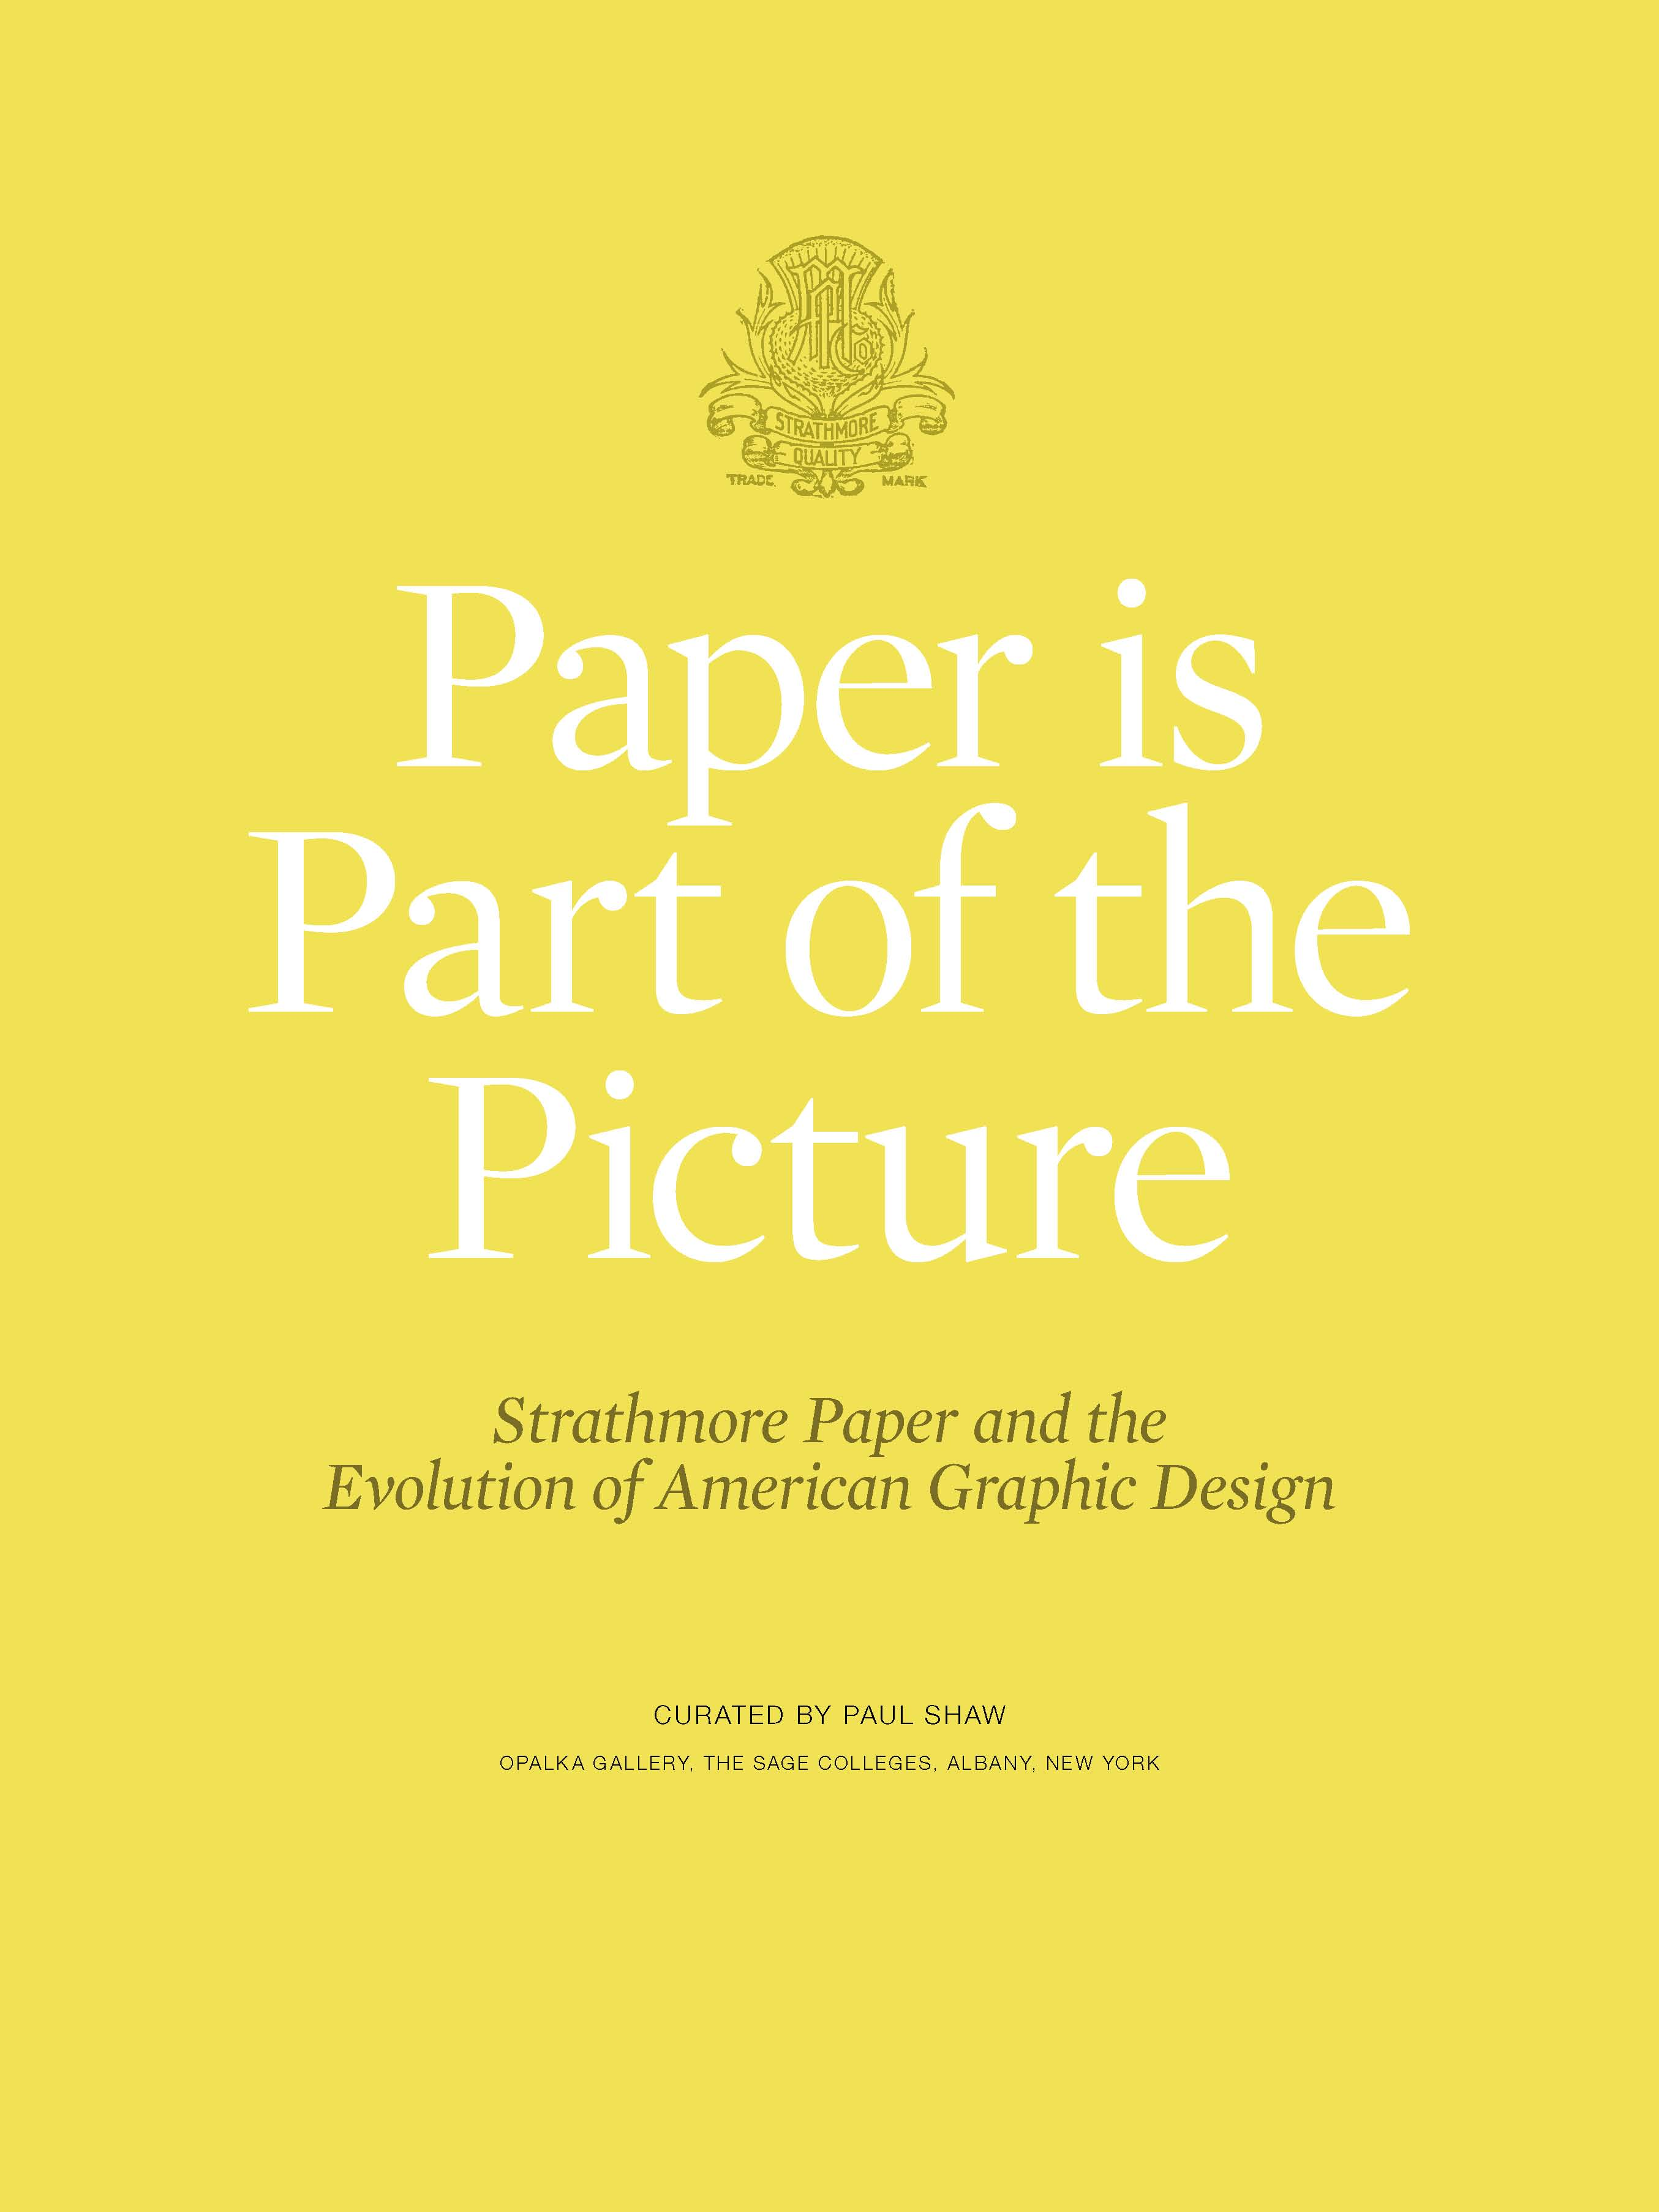 Paper Is Part of the Picture: Strathmore Paper and the Evolution of American Graphic Design by Paul Shaw. Title page design by Jennifer Wilkerson, Aurora Design.